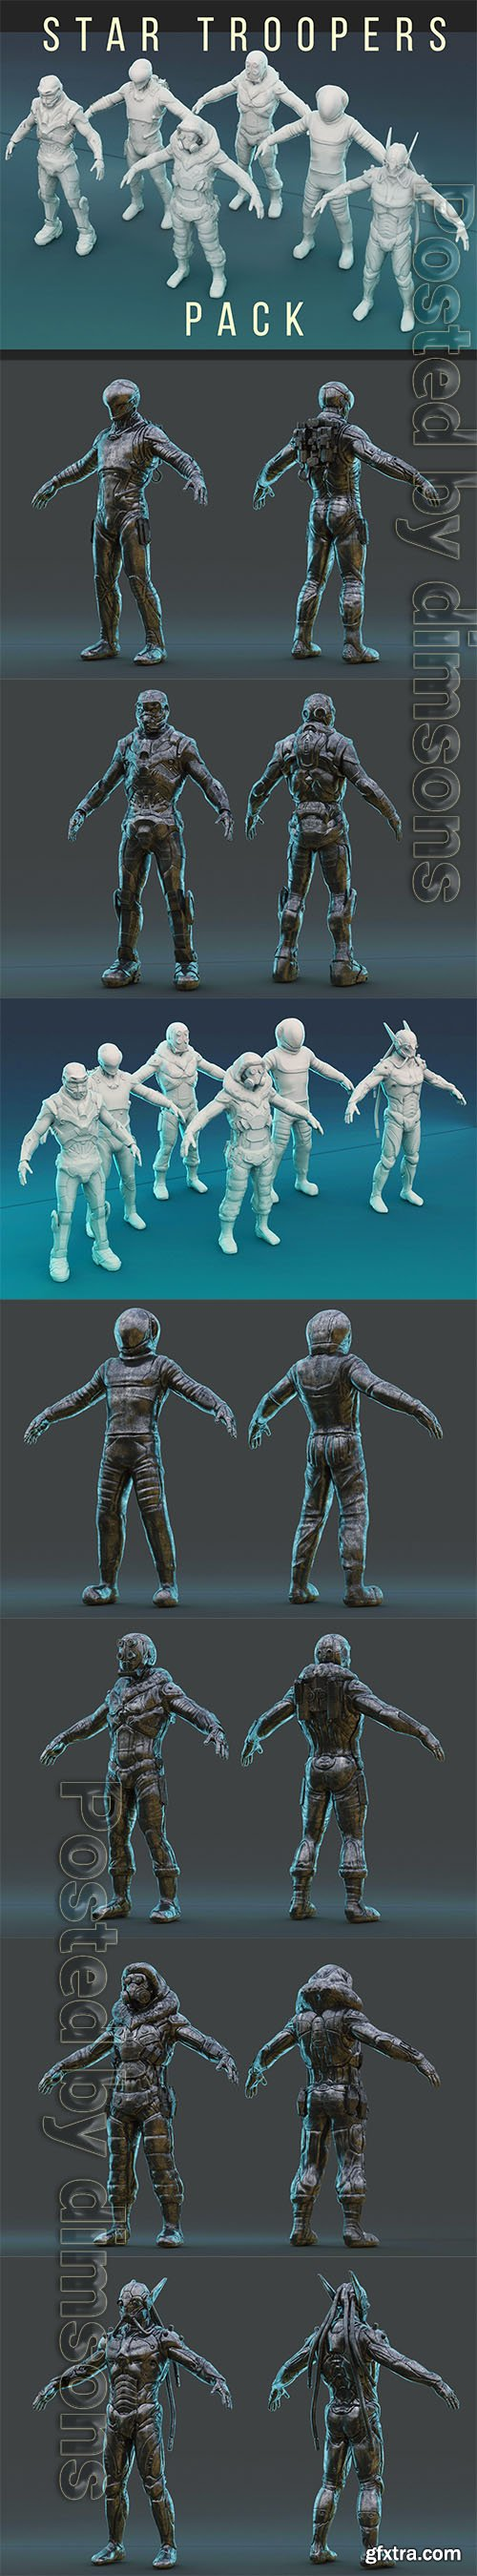 Cgtrader - Star Trooper Pack 3D model